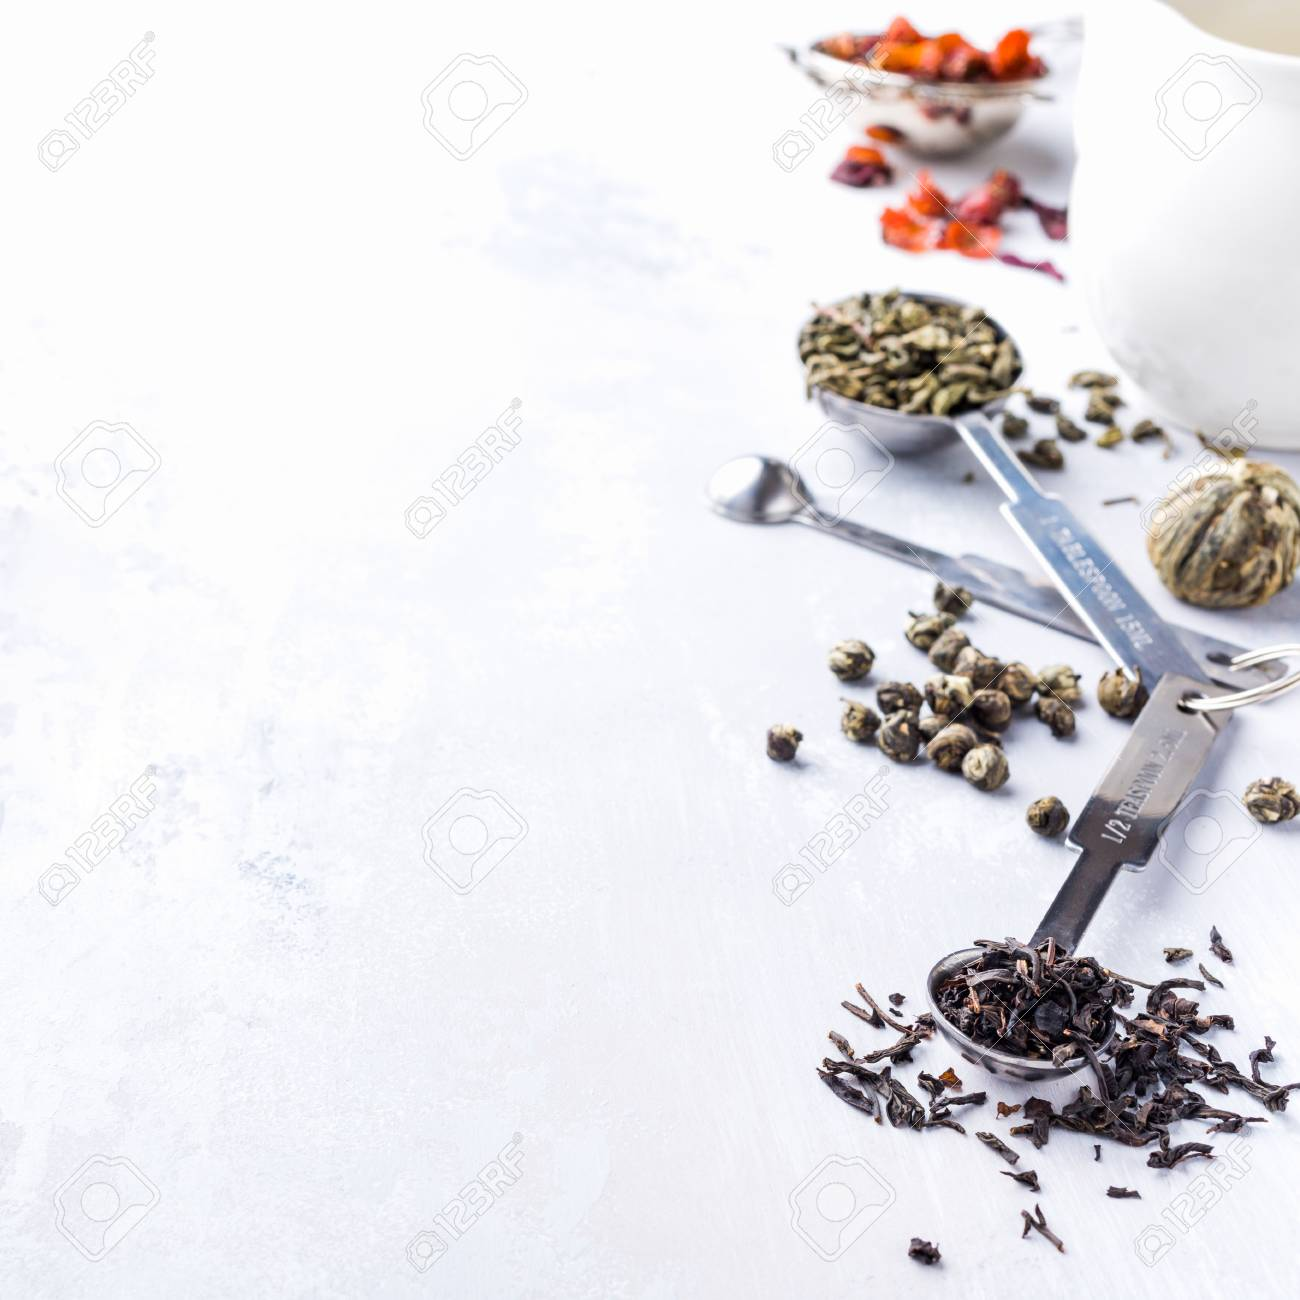 Background With Different Types Of Tea Leaves Black Green Stock